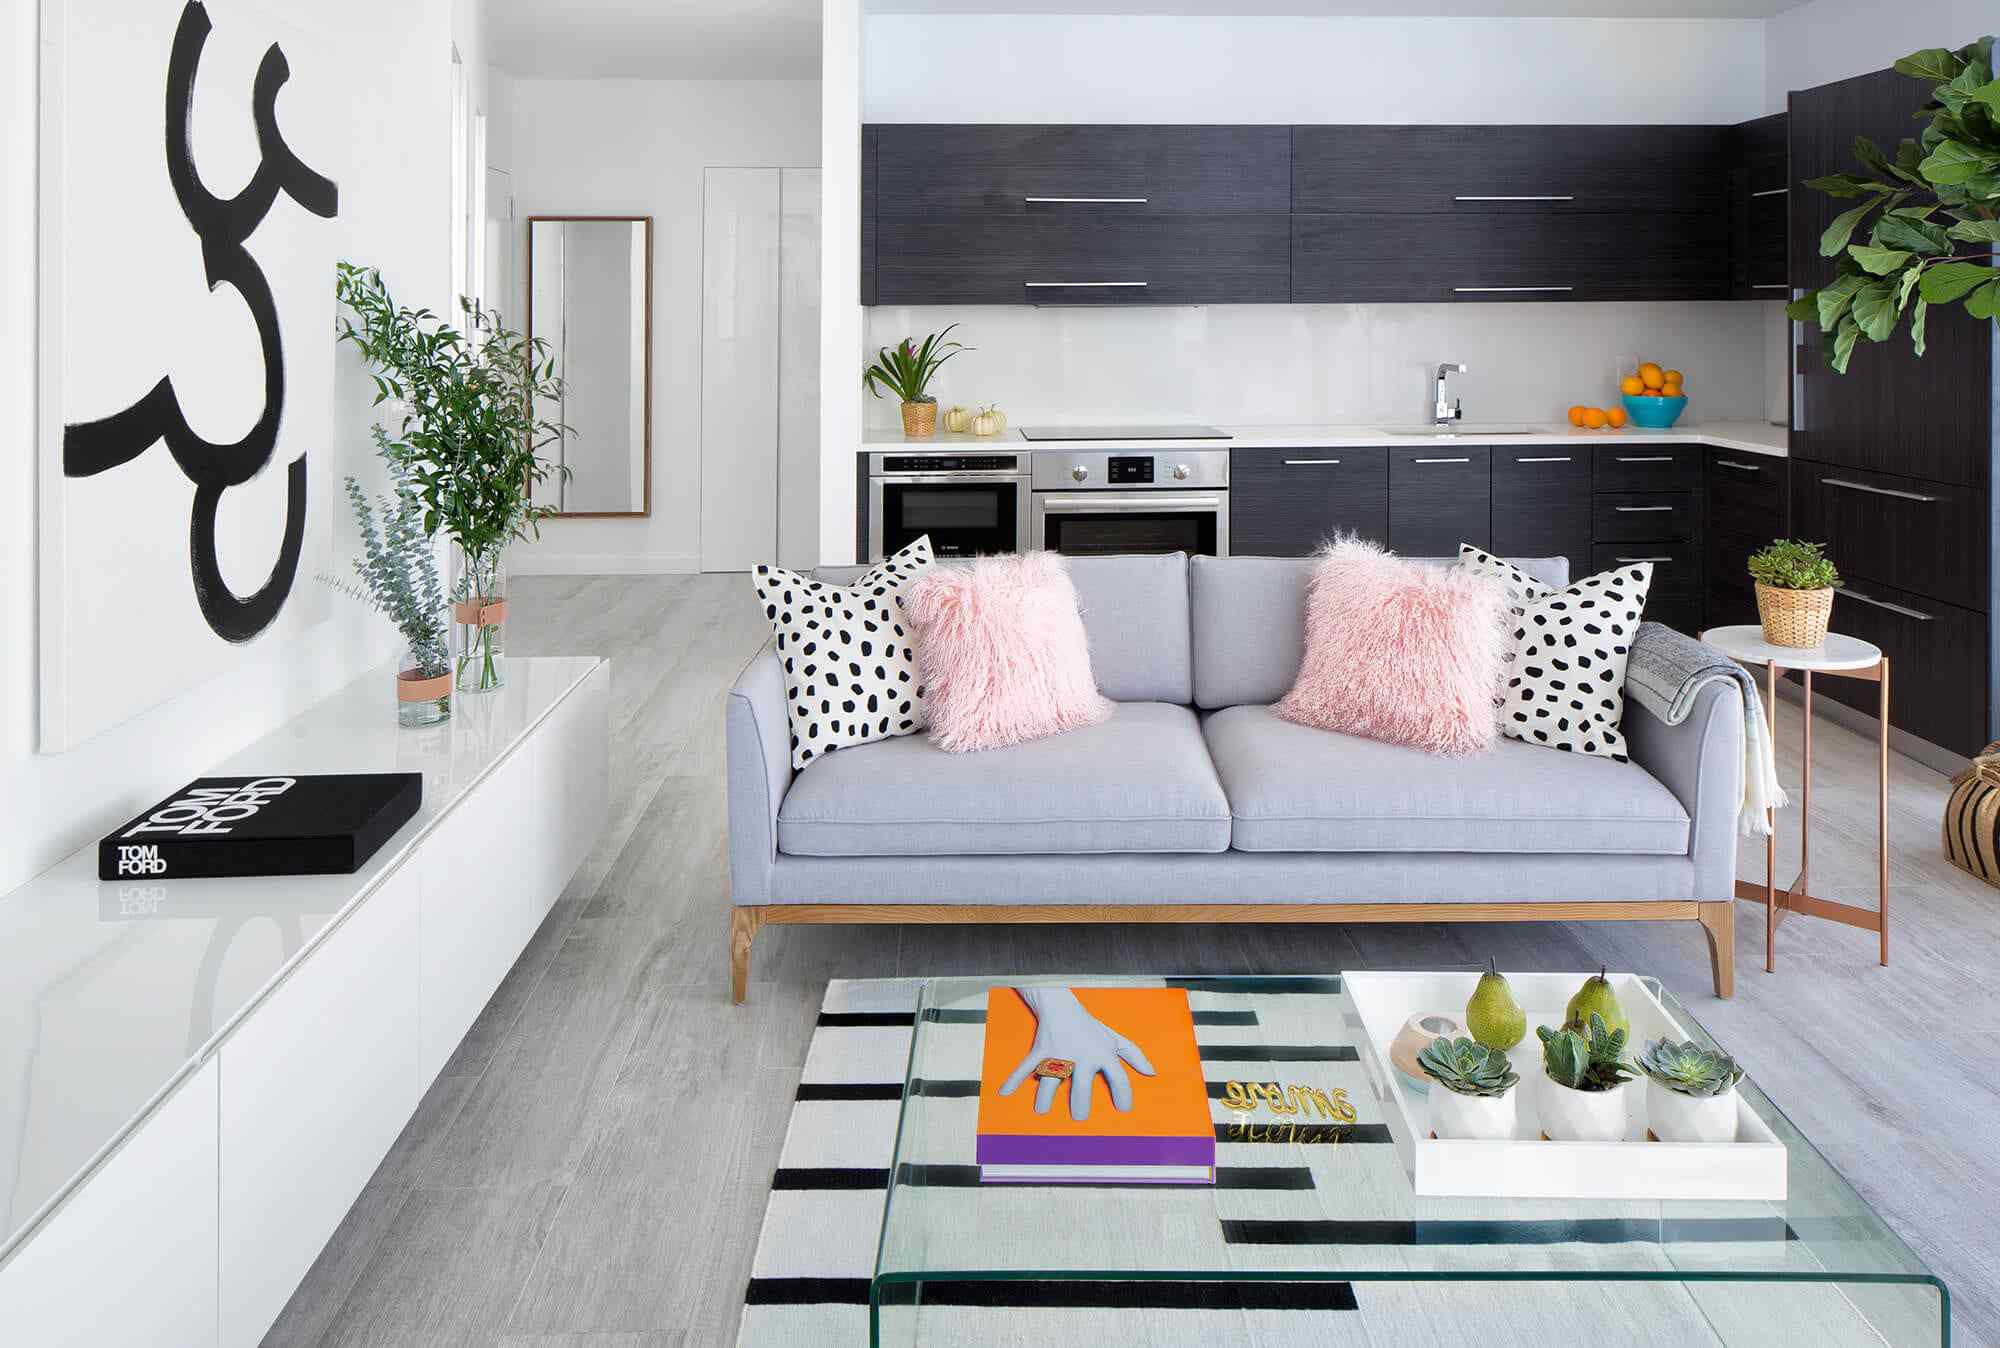 Modern eclectic living room with funky throw pillows.